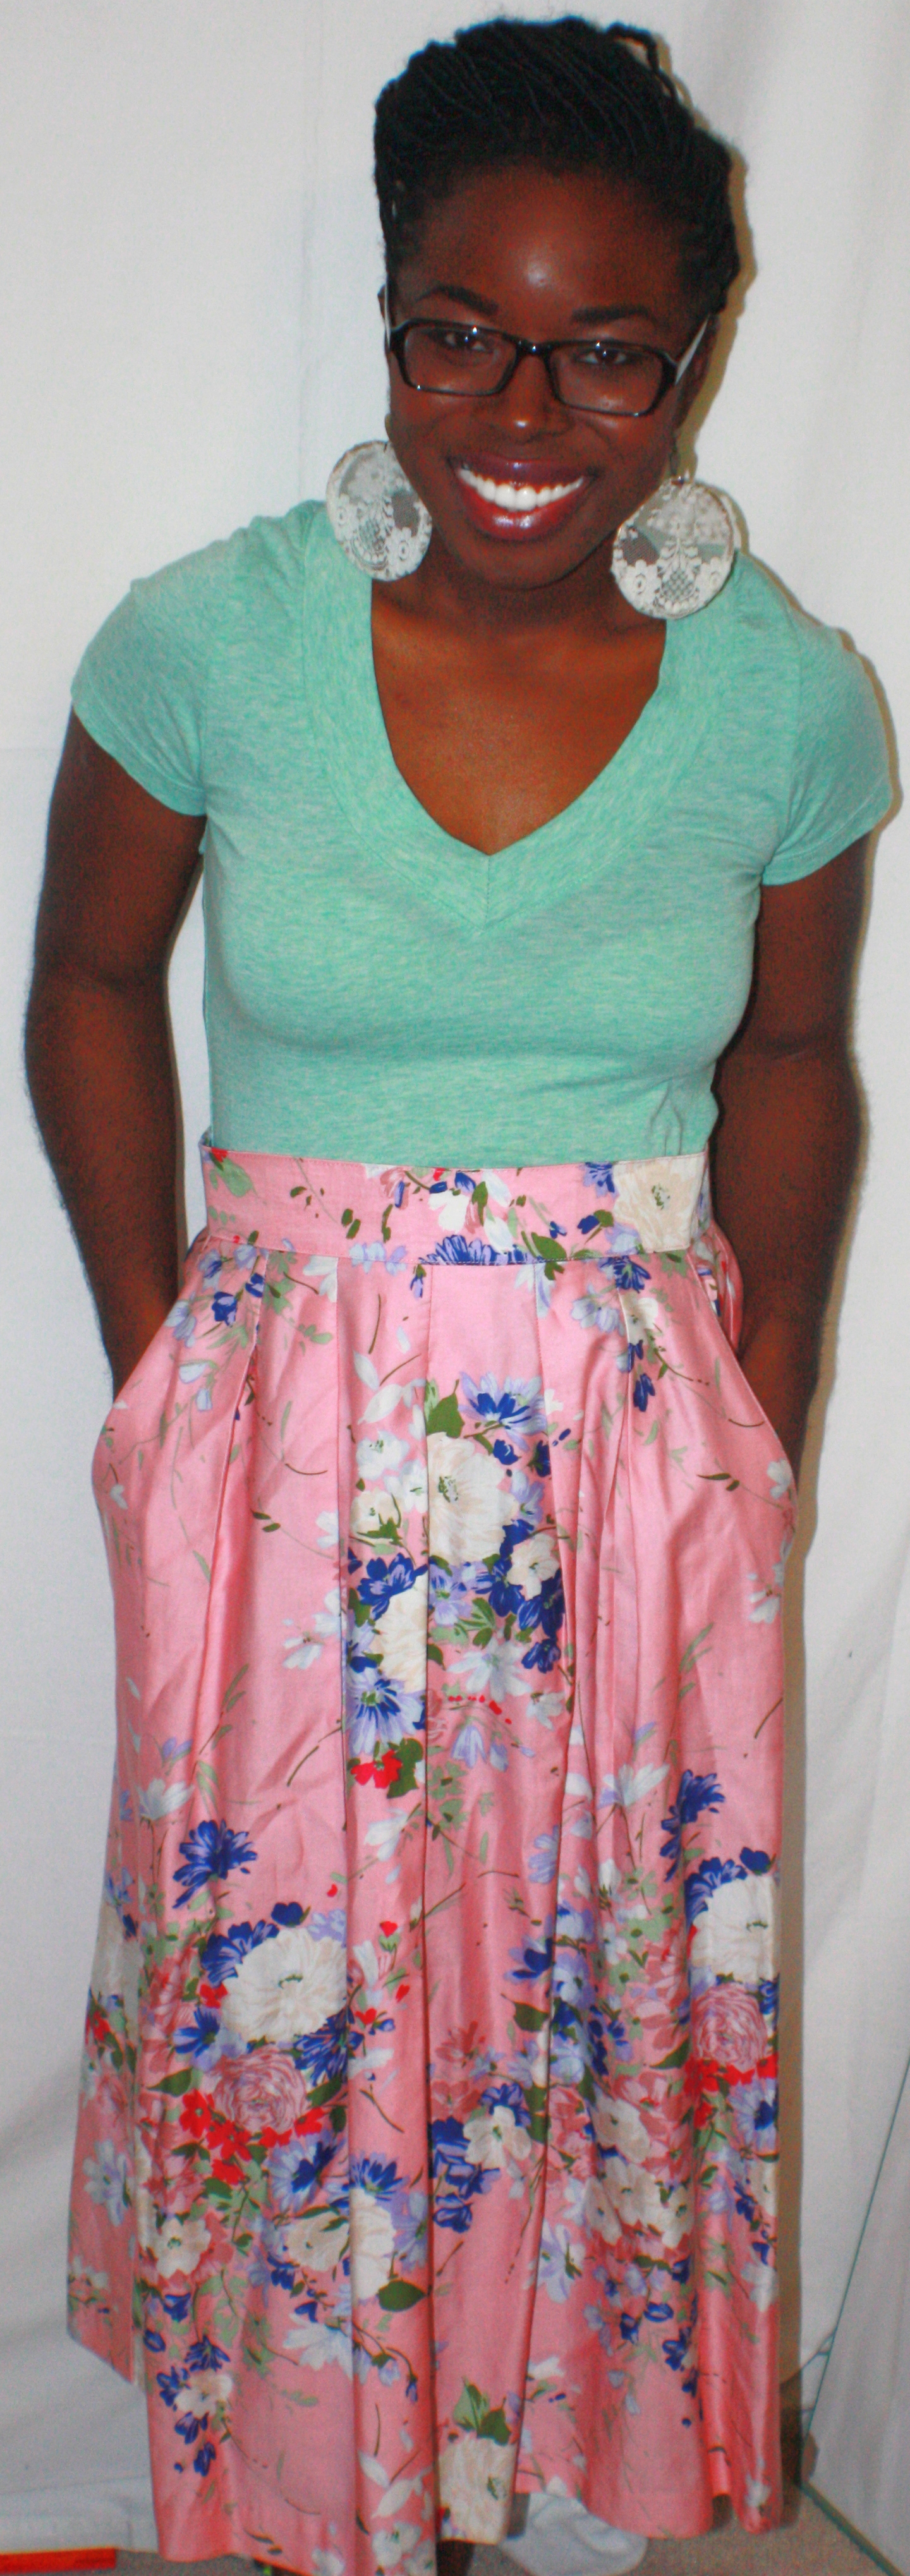 clothes swap | Search Results | Naturale Chronicles | Page 2